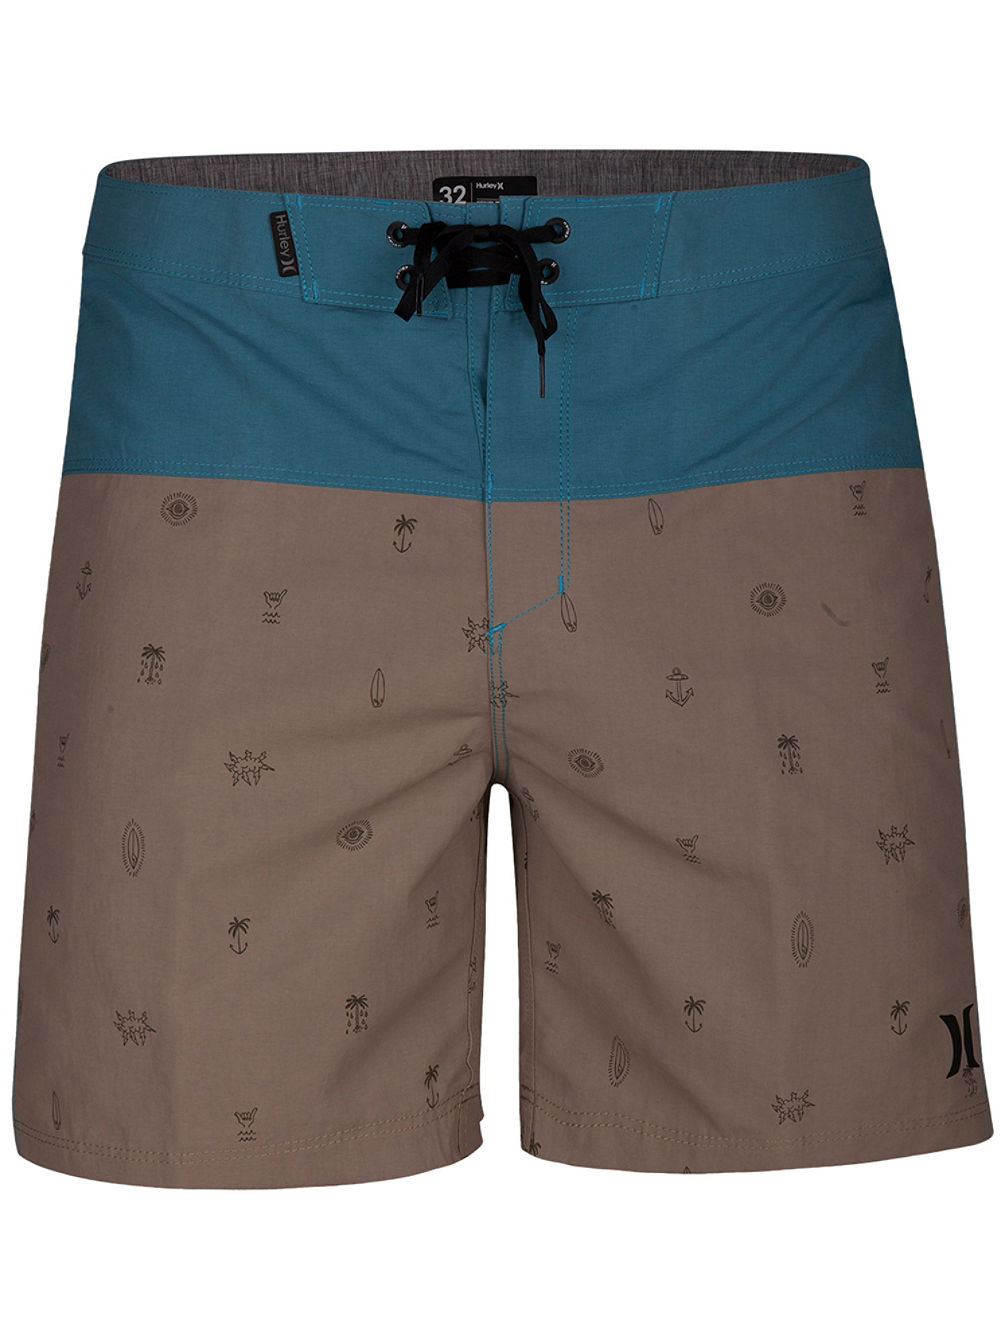 School Yard 18' Boardshorts